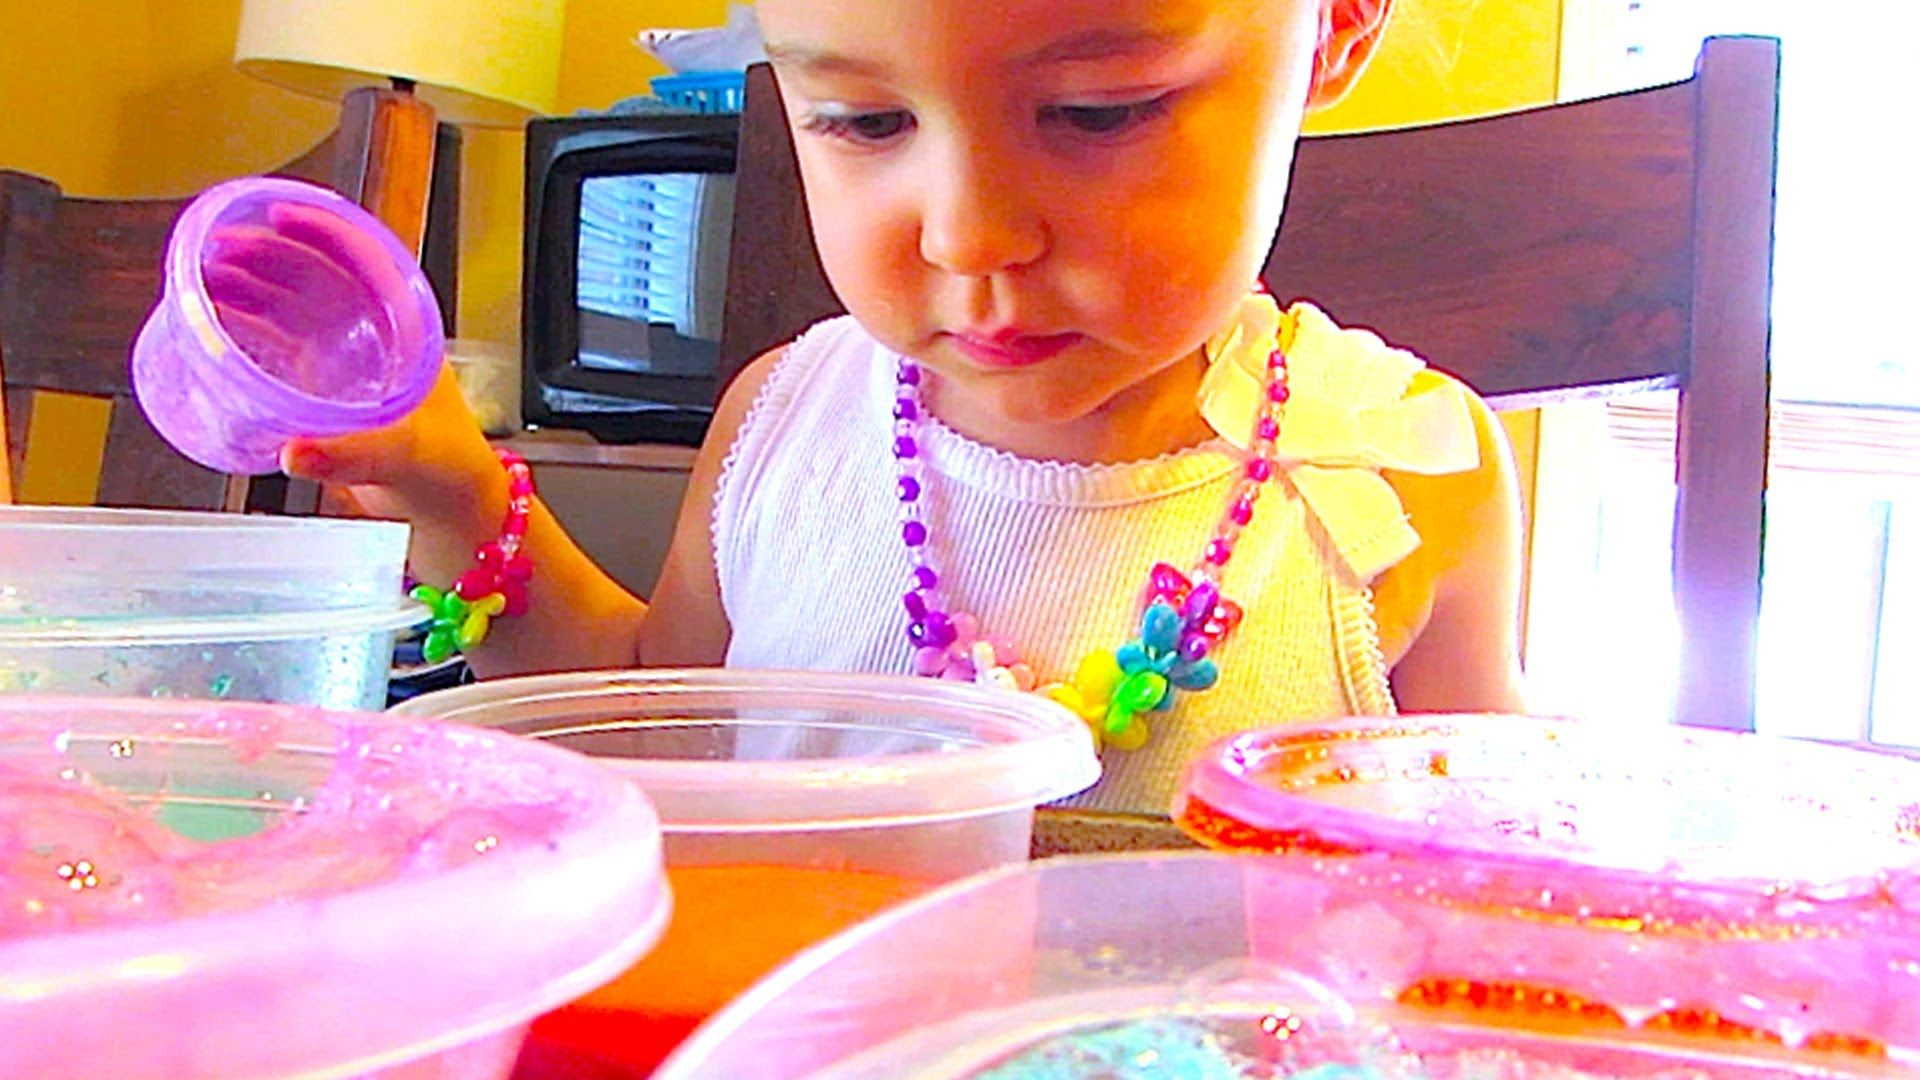 Baking Soda Amp Vinegar Science Experiments For Toddlers